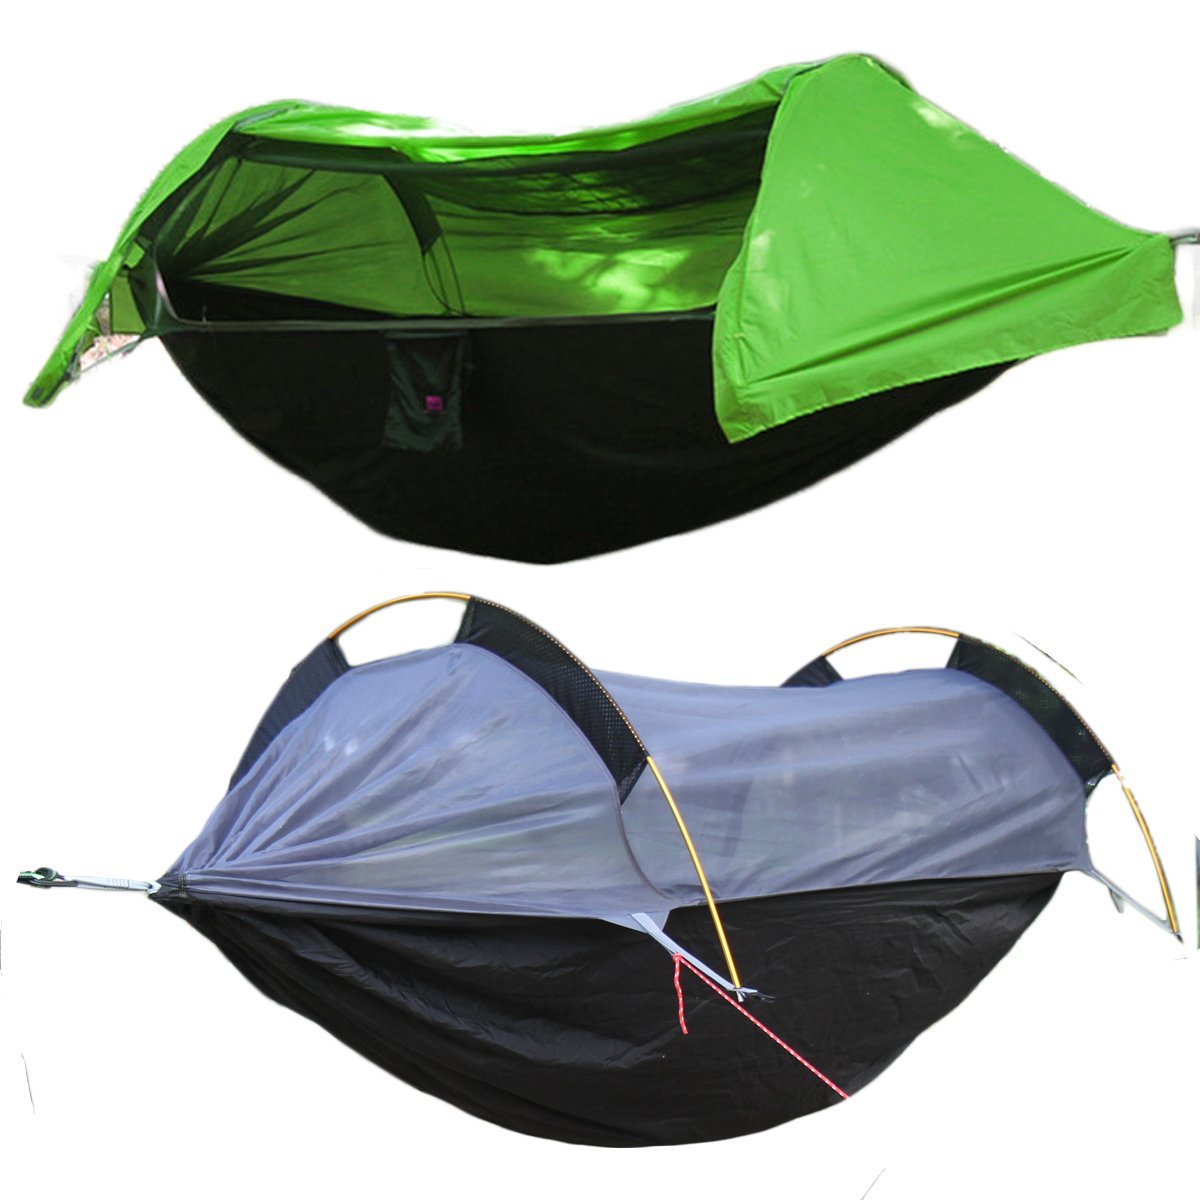 WintMing Patent Camping Hammock with Mosquito Net